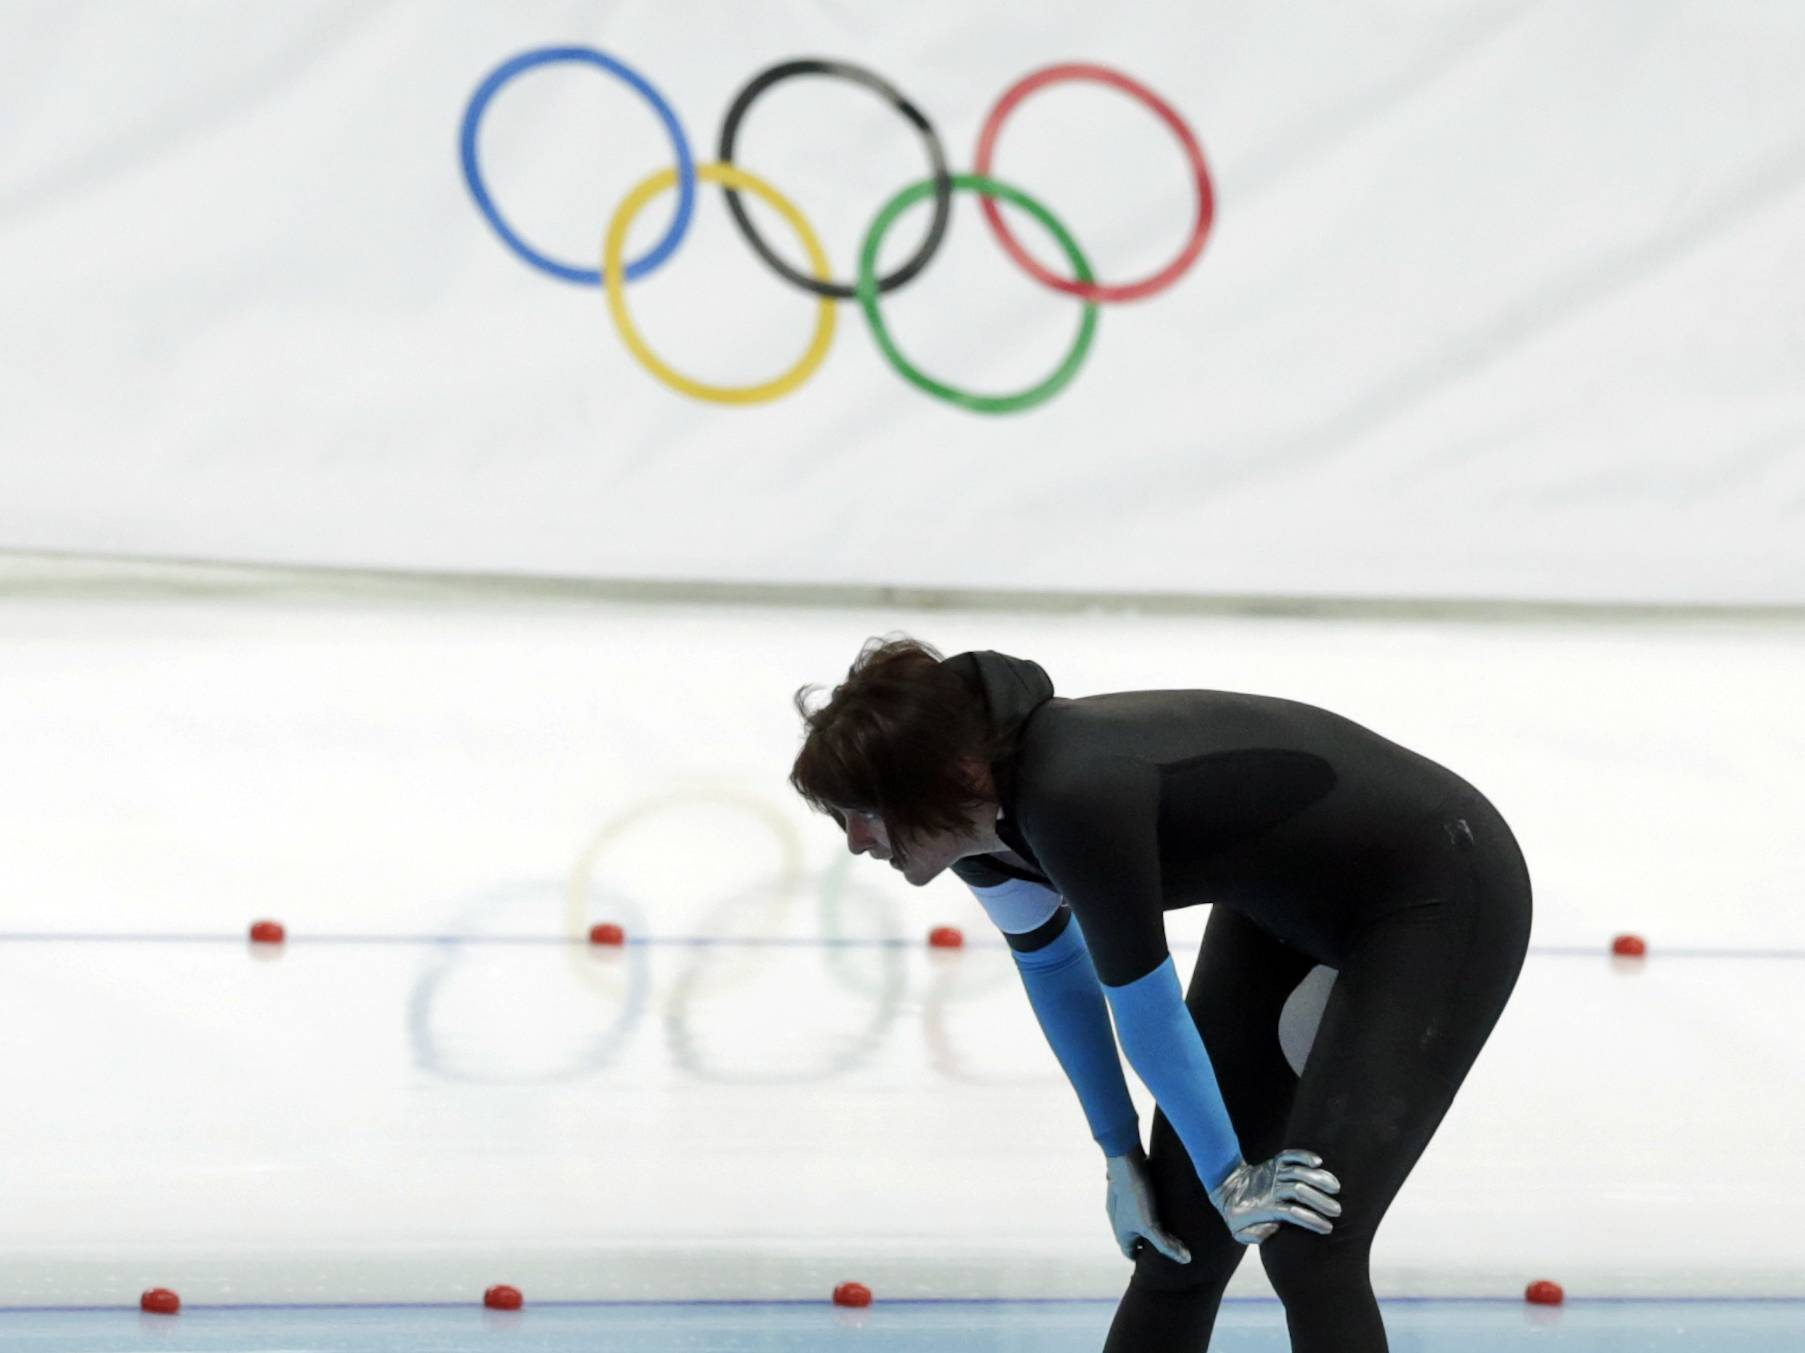 Heather Richardson of the U.S. catches her breath after competing in the women's 1,500-meter race at the Adler Arena Skating Center during the 2014 Winter Olympics in Sochi, Russia, Sunday, Feb. 16, 2014.